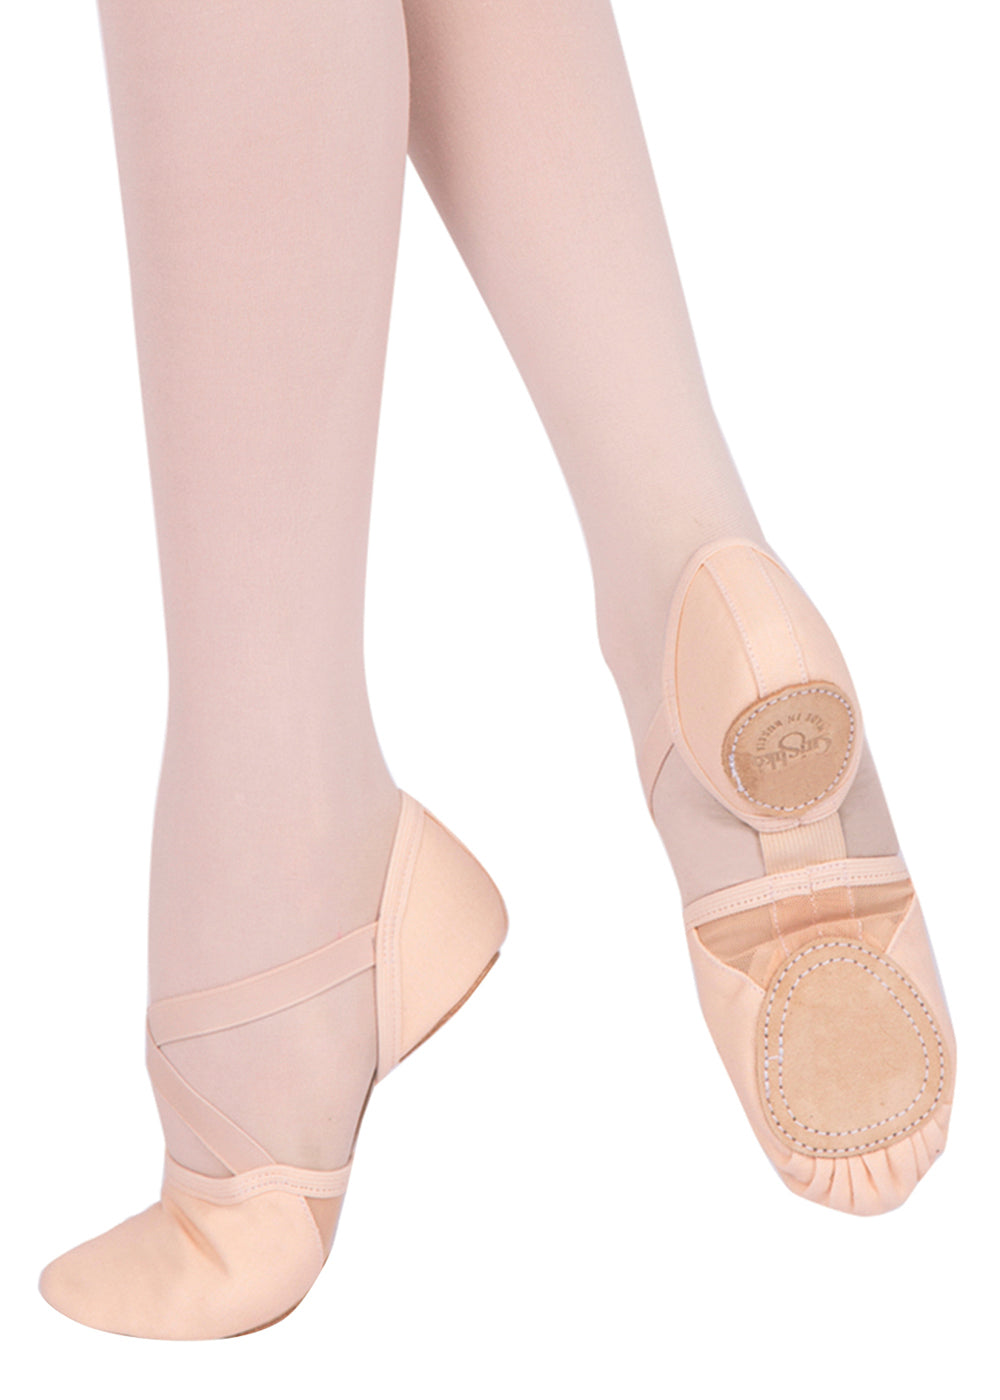 Model 10 X-Strap Canvas Split Sole Ballet Slipper